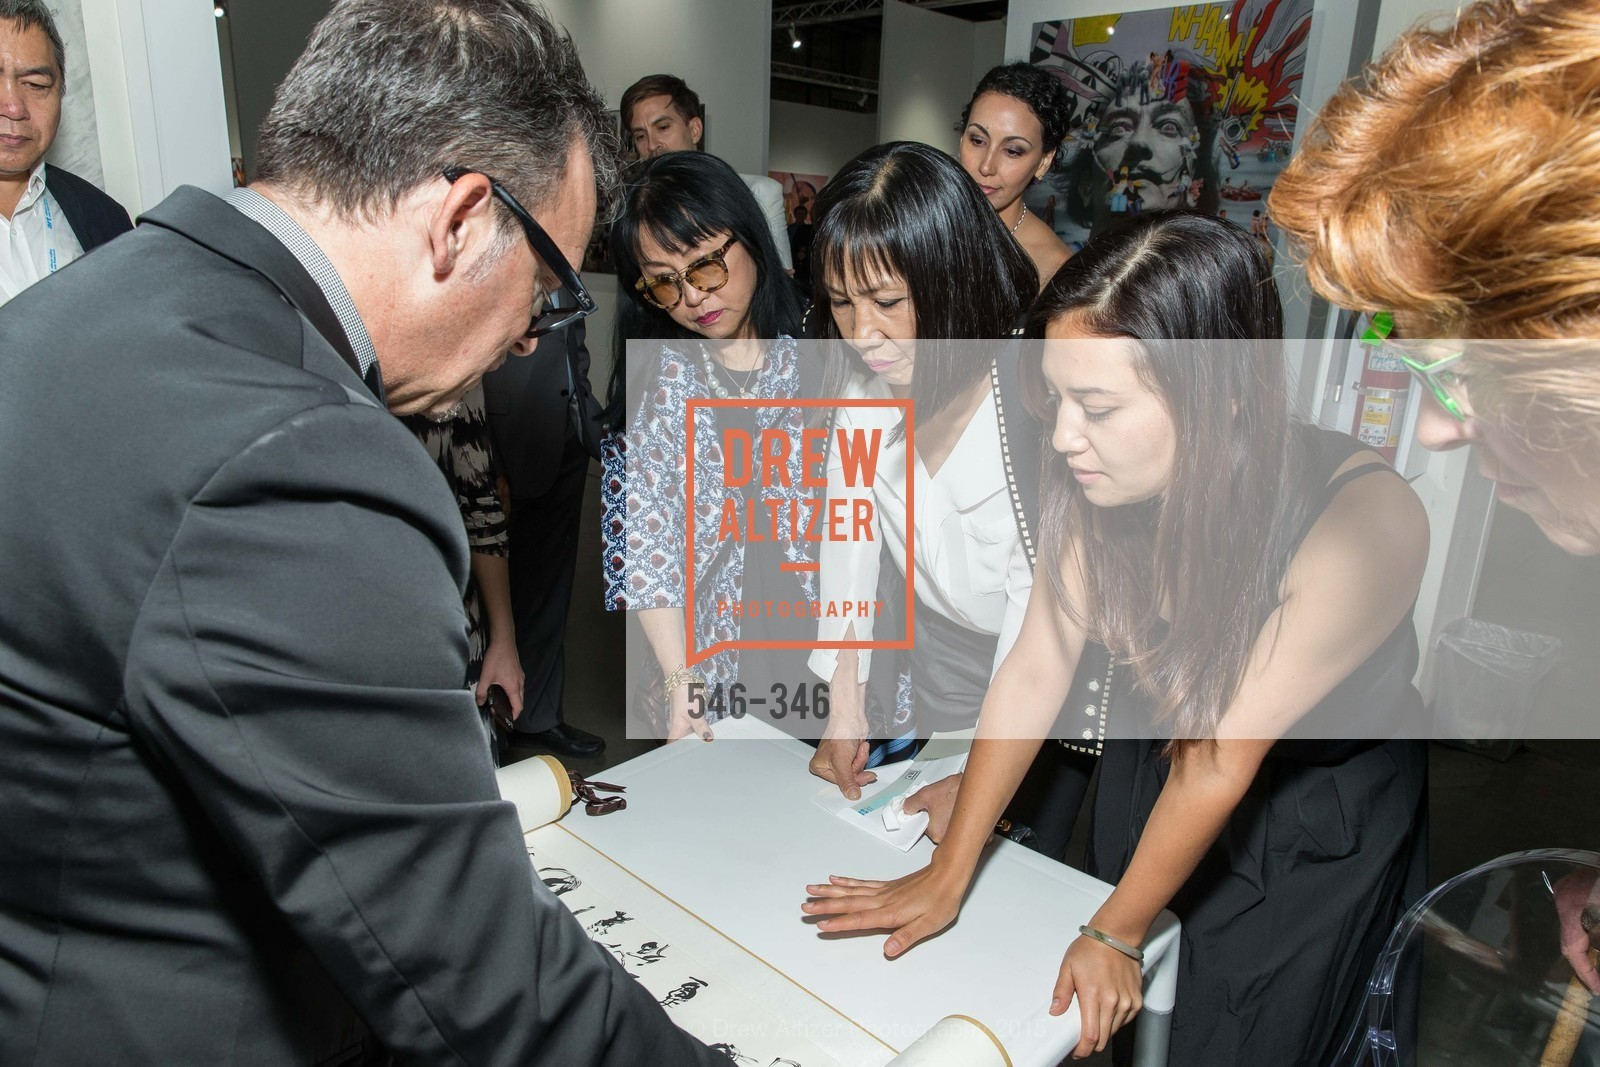 Suno Kay Osterweis, Lucy Sun, Karin Oen, Art Miami Presents: Art Silicon Valley, San Mateo County Event Center. 1346 Saratoga Dr, October 8th, 2015,Drew Altizer, Drew Altizer Photography, full-service event agency, private events, San Francisco photographer, photographer California